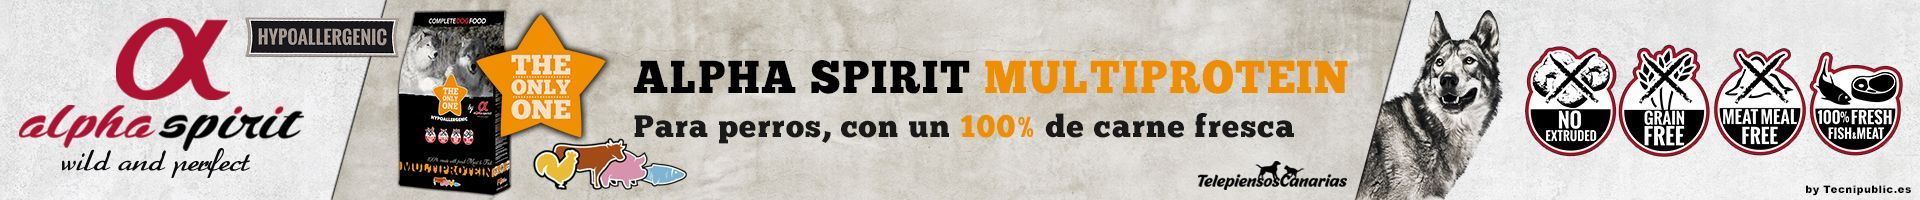 Alpha Spirit alimento multiprotein, pienso 100% natural